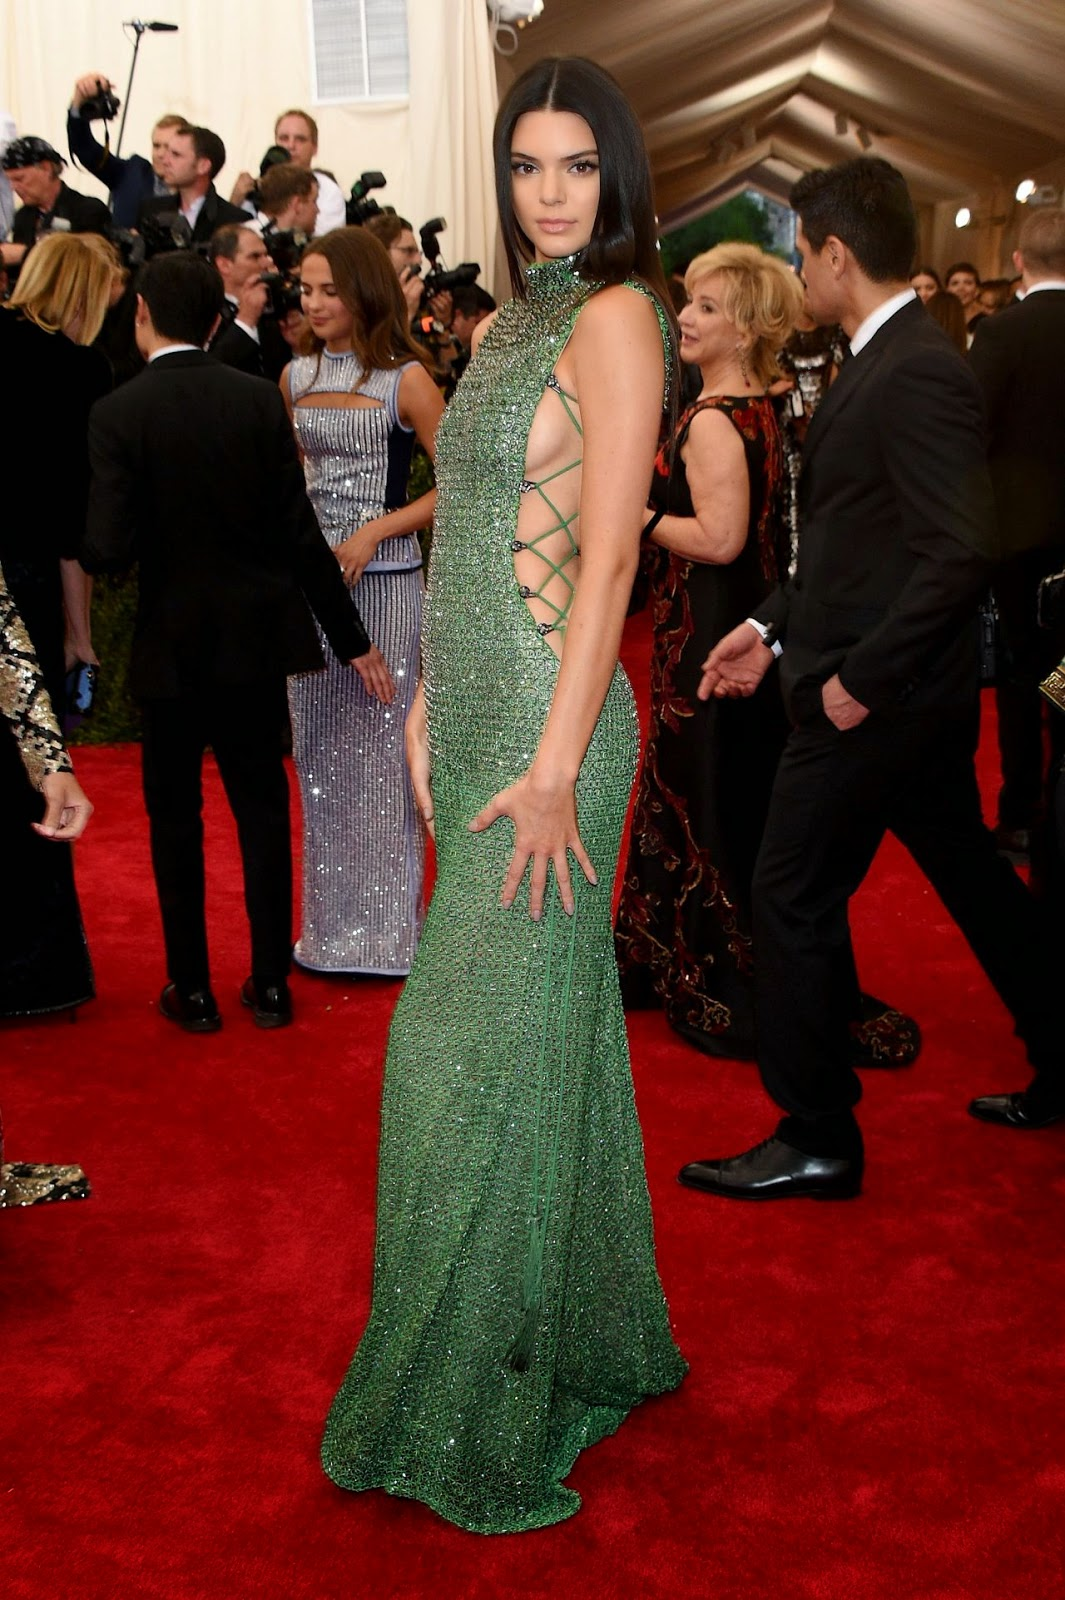 Kendall Jenner shows off side-boob in a sequinned dress at the 2015 Met Gala